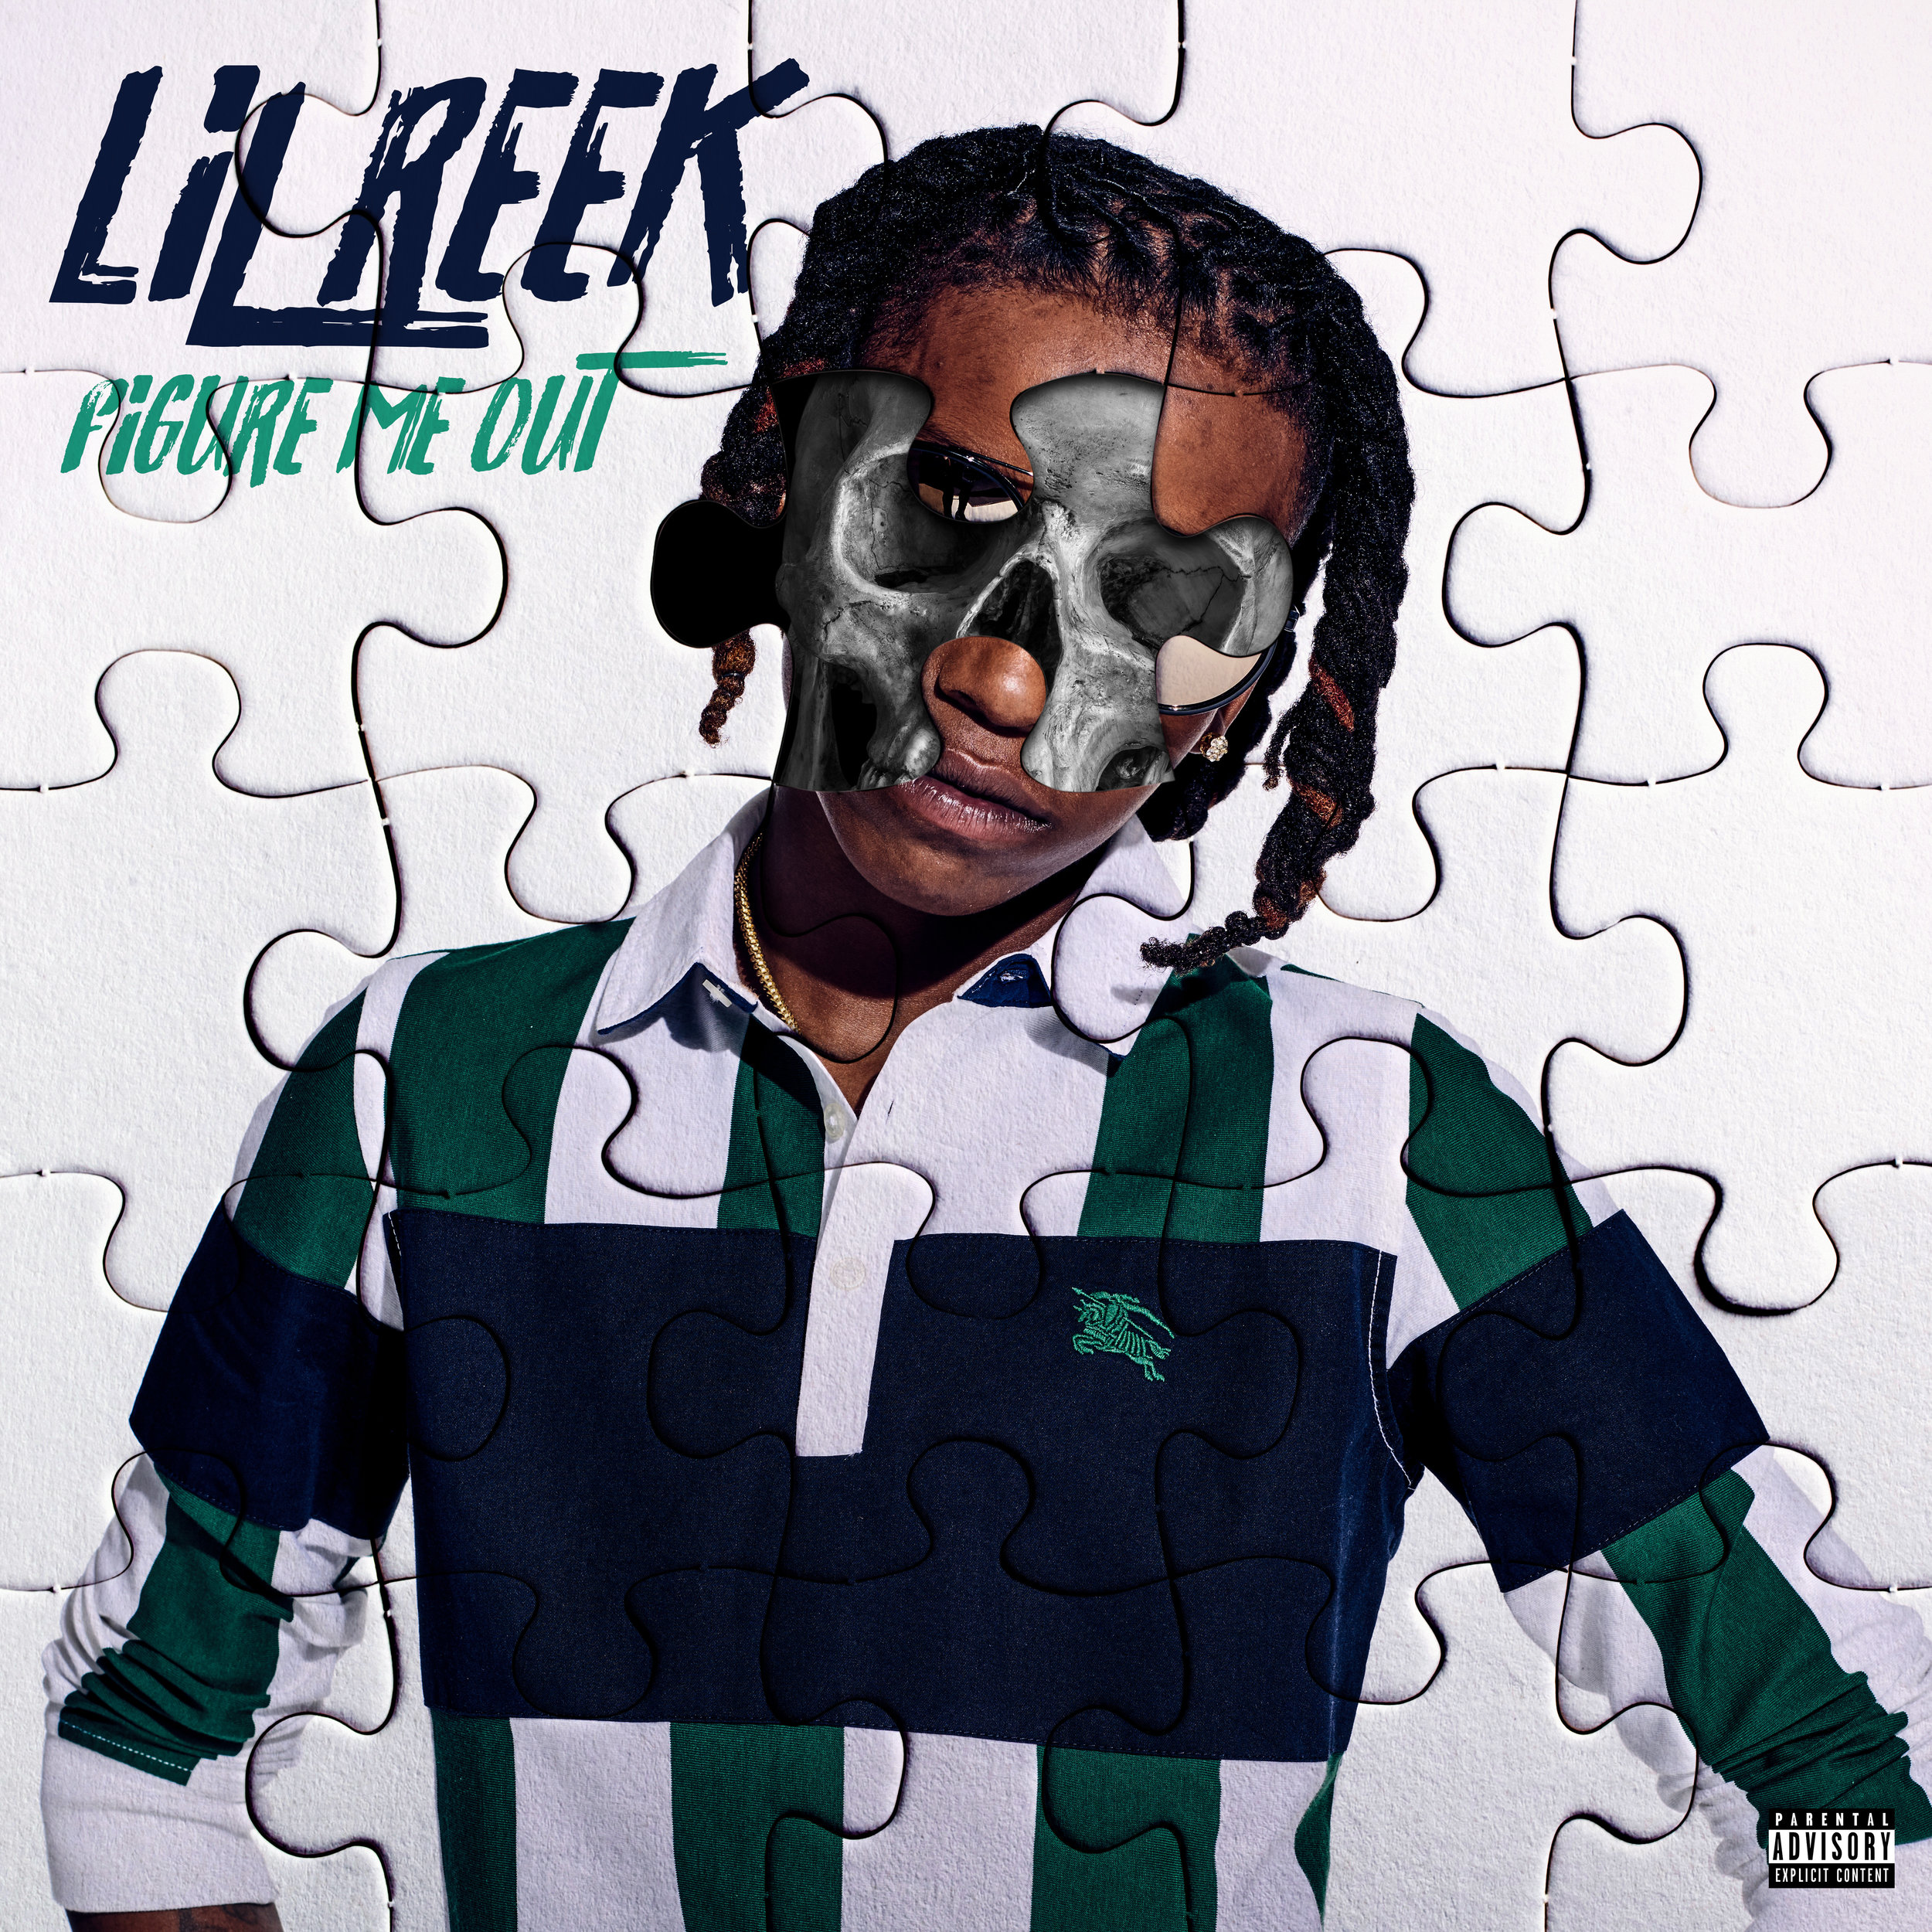 LIL REEK - FIGURE ME OUT (SINGLE)